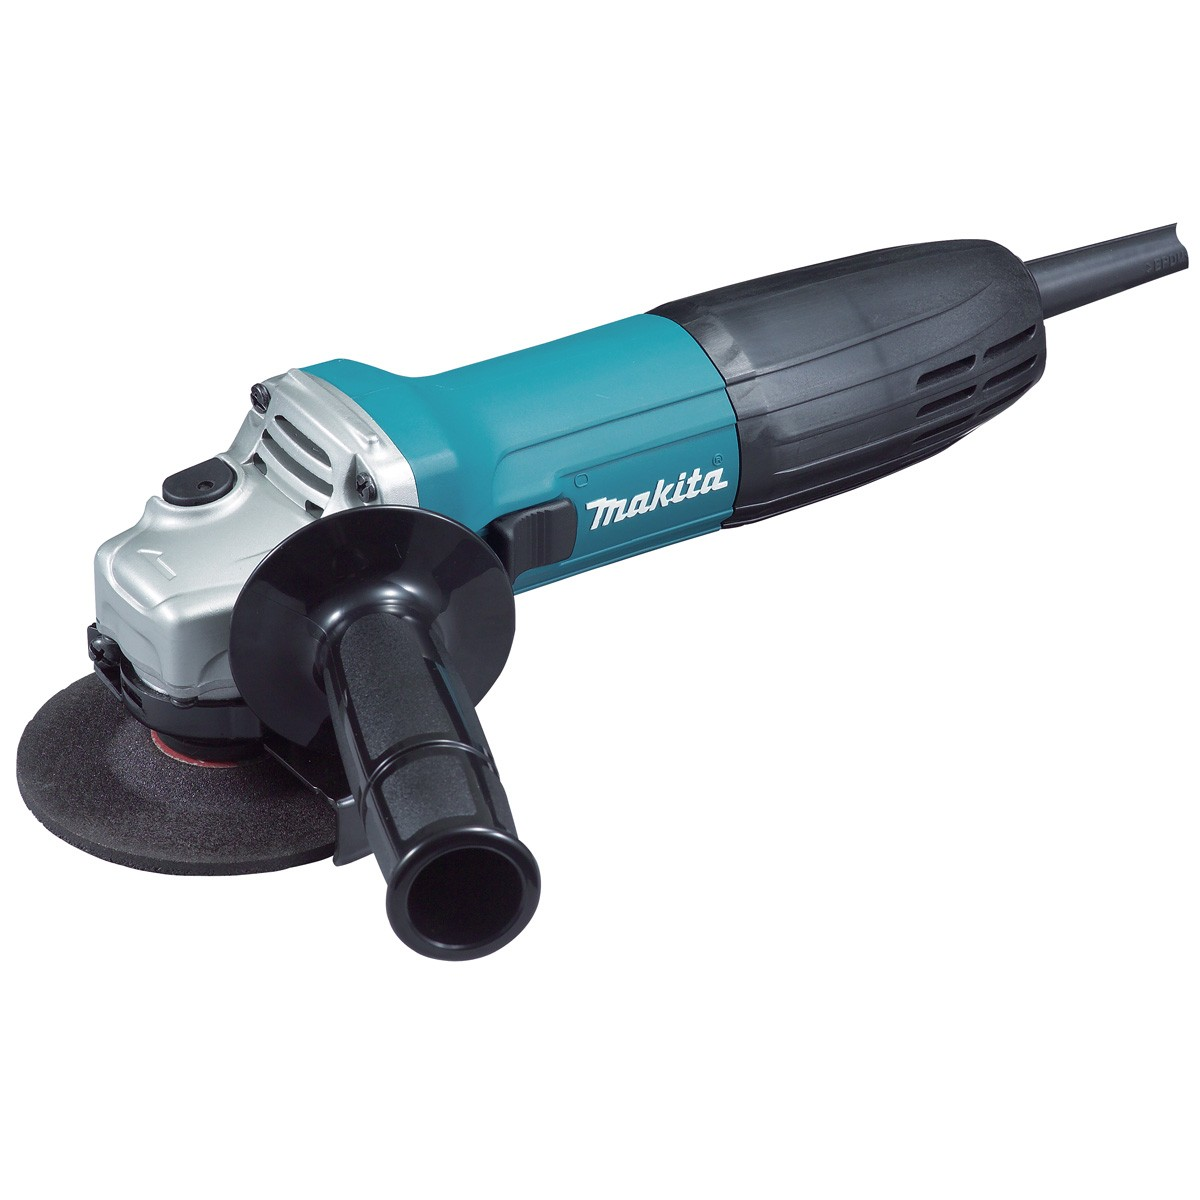 Makita GA4030 720w 100mm Slim Angle Grinder